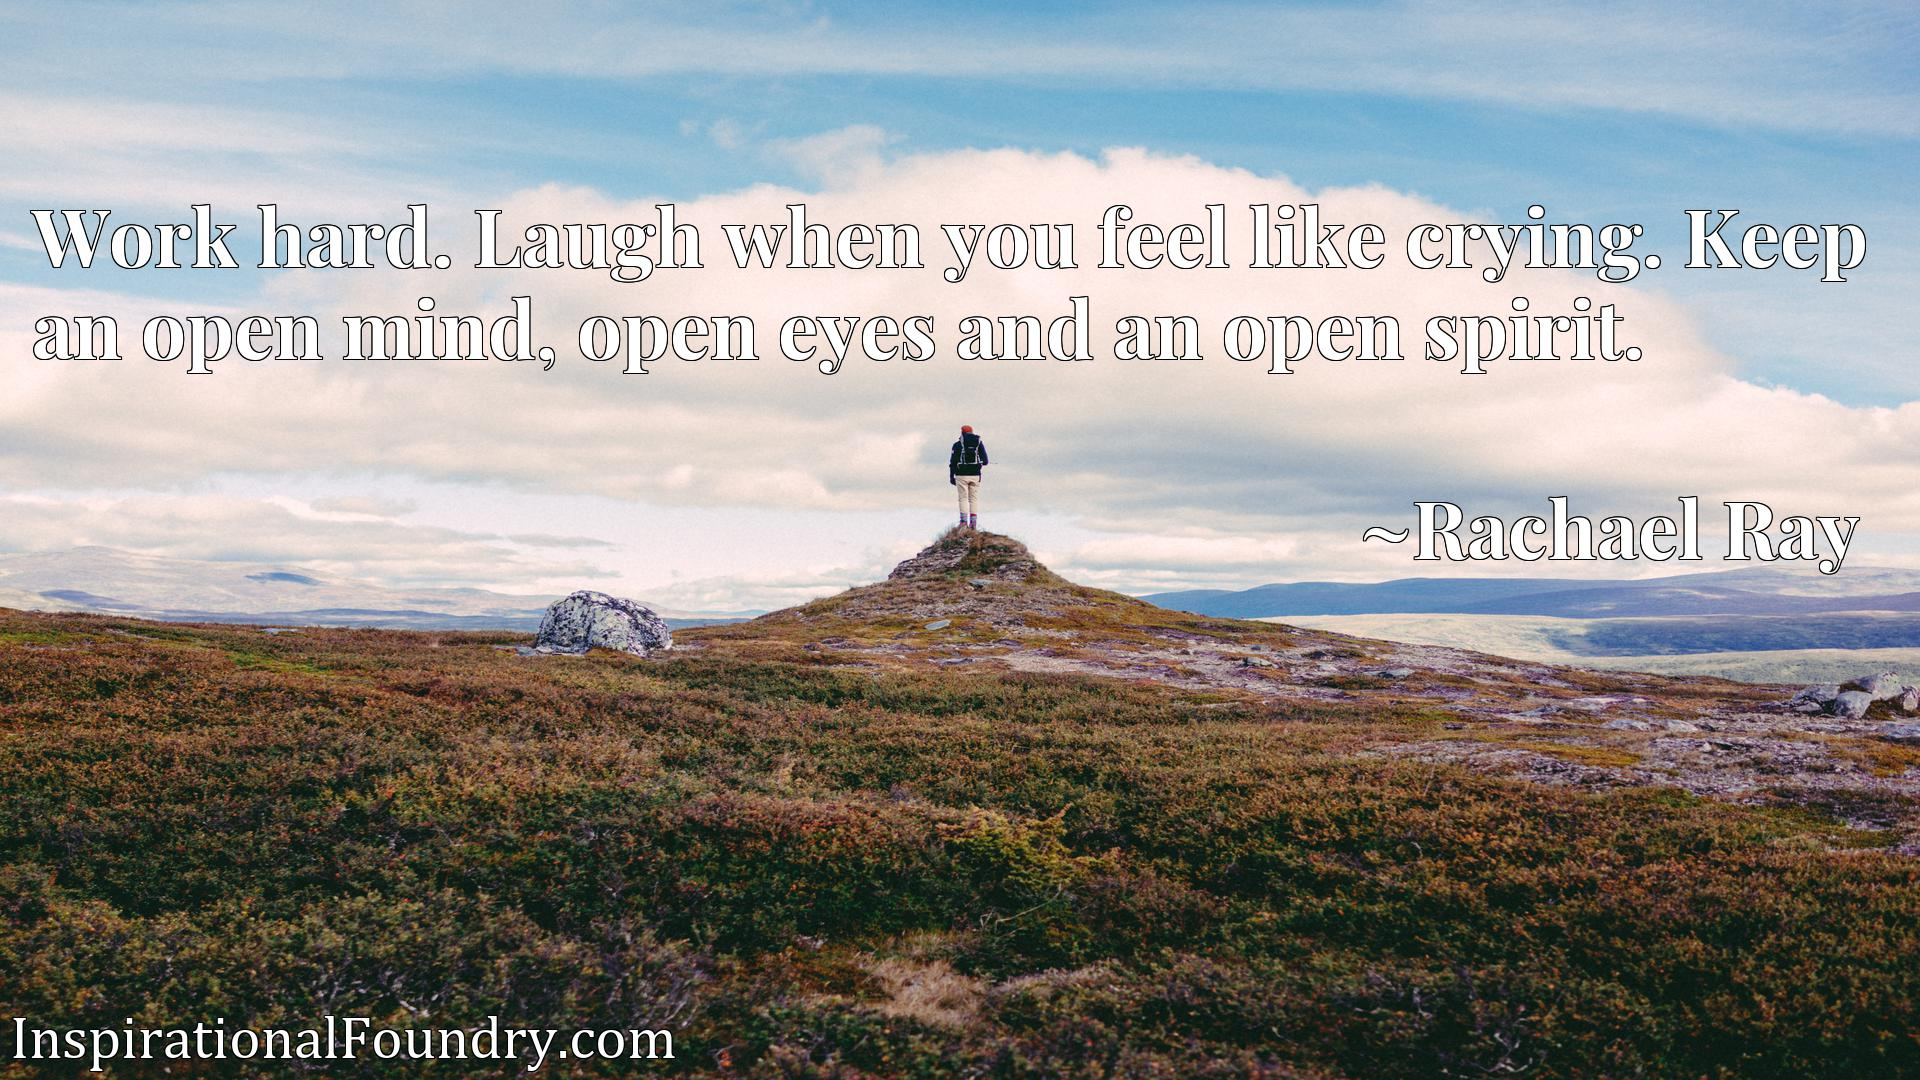 Work hard. Laugh when you feel like crying. Keep an open mind, open eyes and an open spirit.